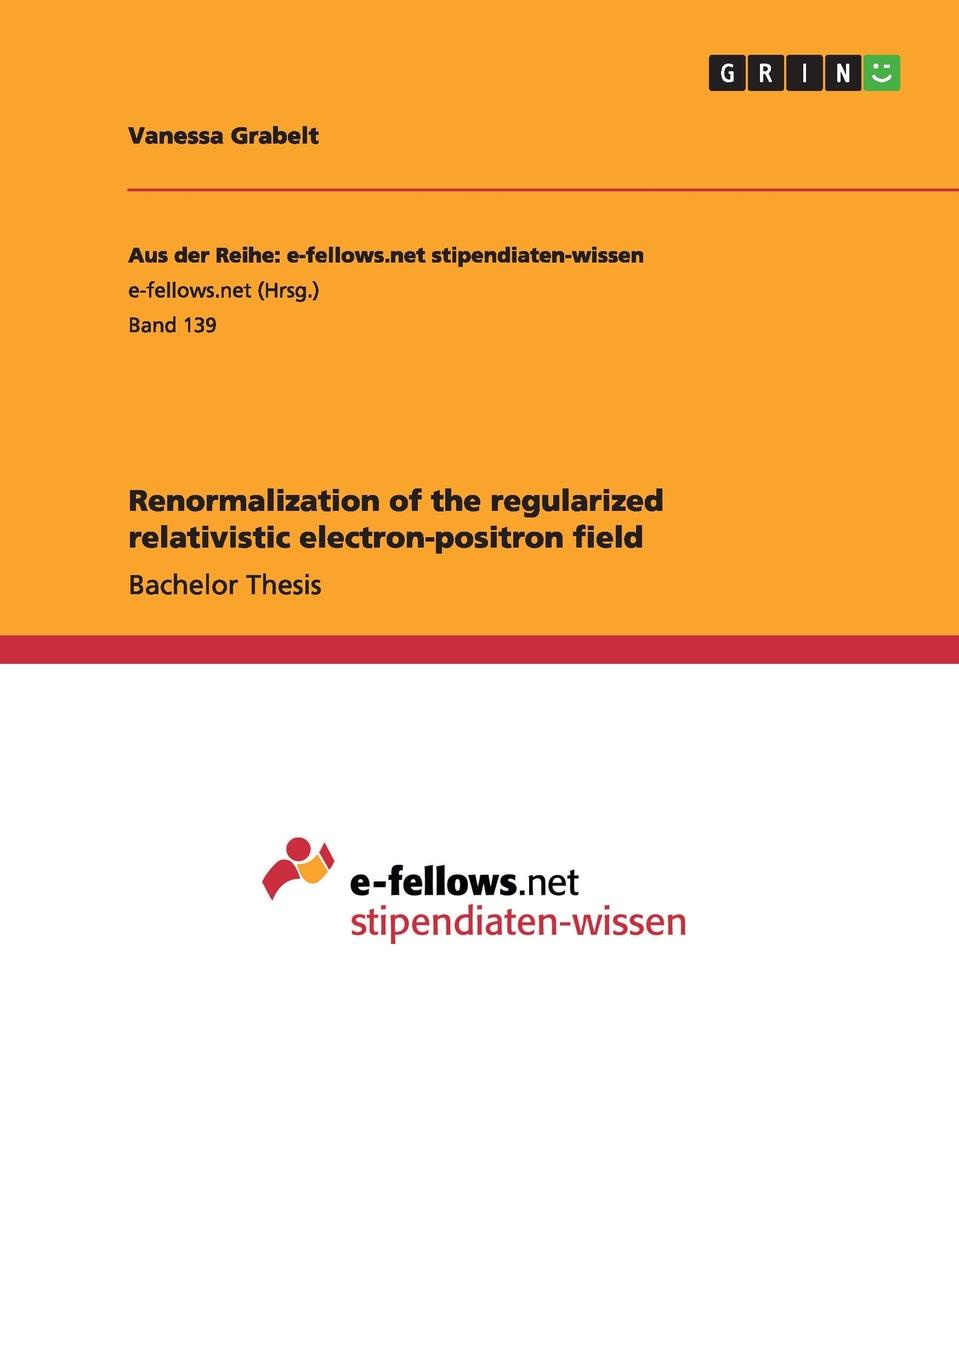 Vanessa Grabelt Renormalization of the regularized relativistic electron-positron field biplab ghosh quantum entanglement and its characteristics in cavity qed